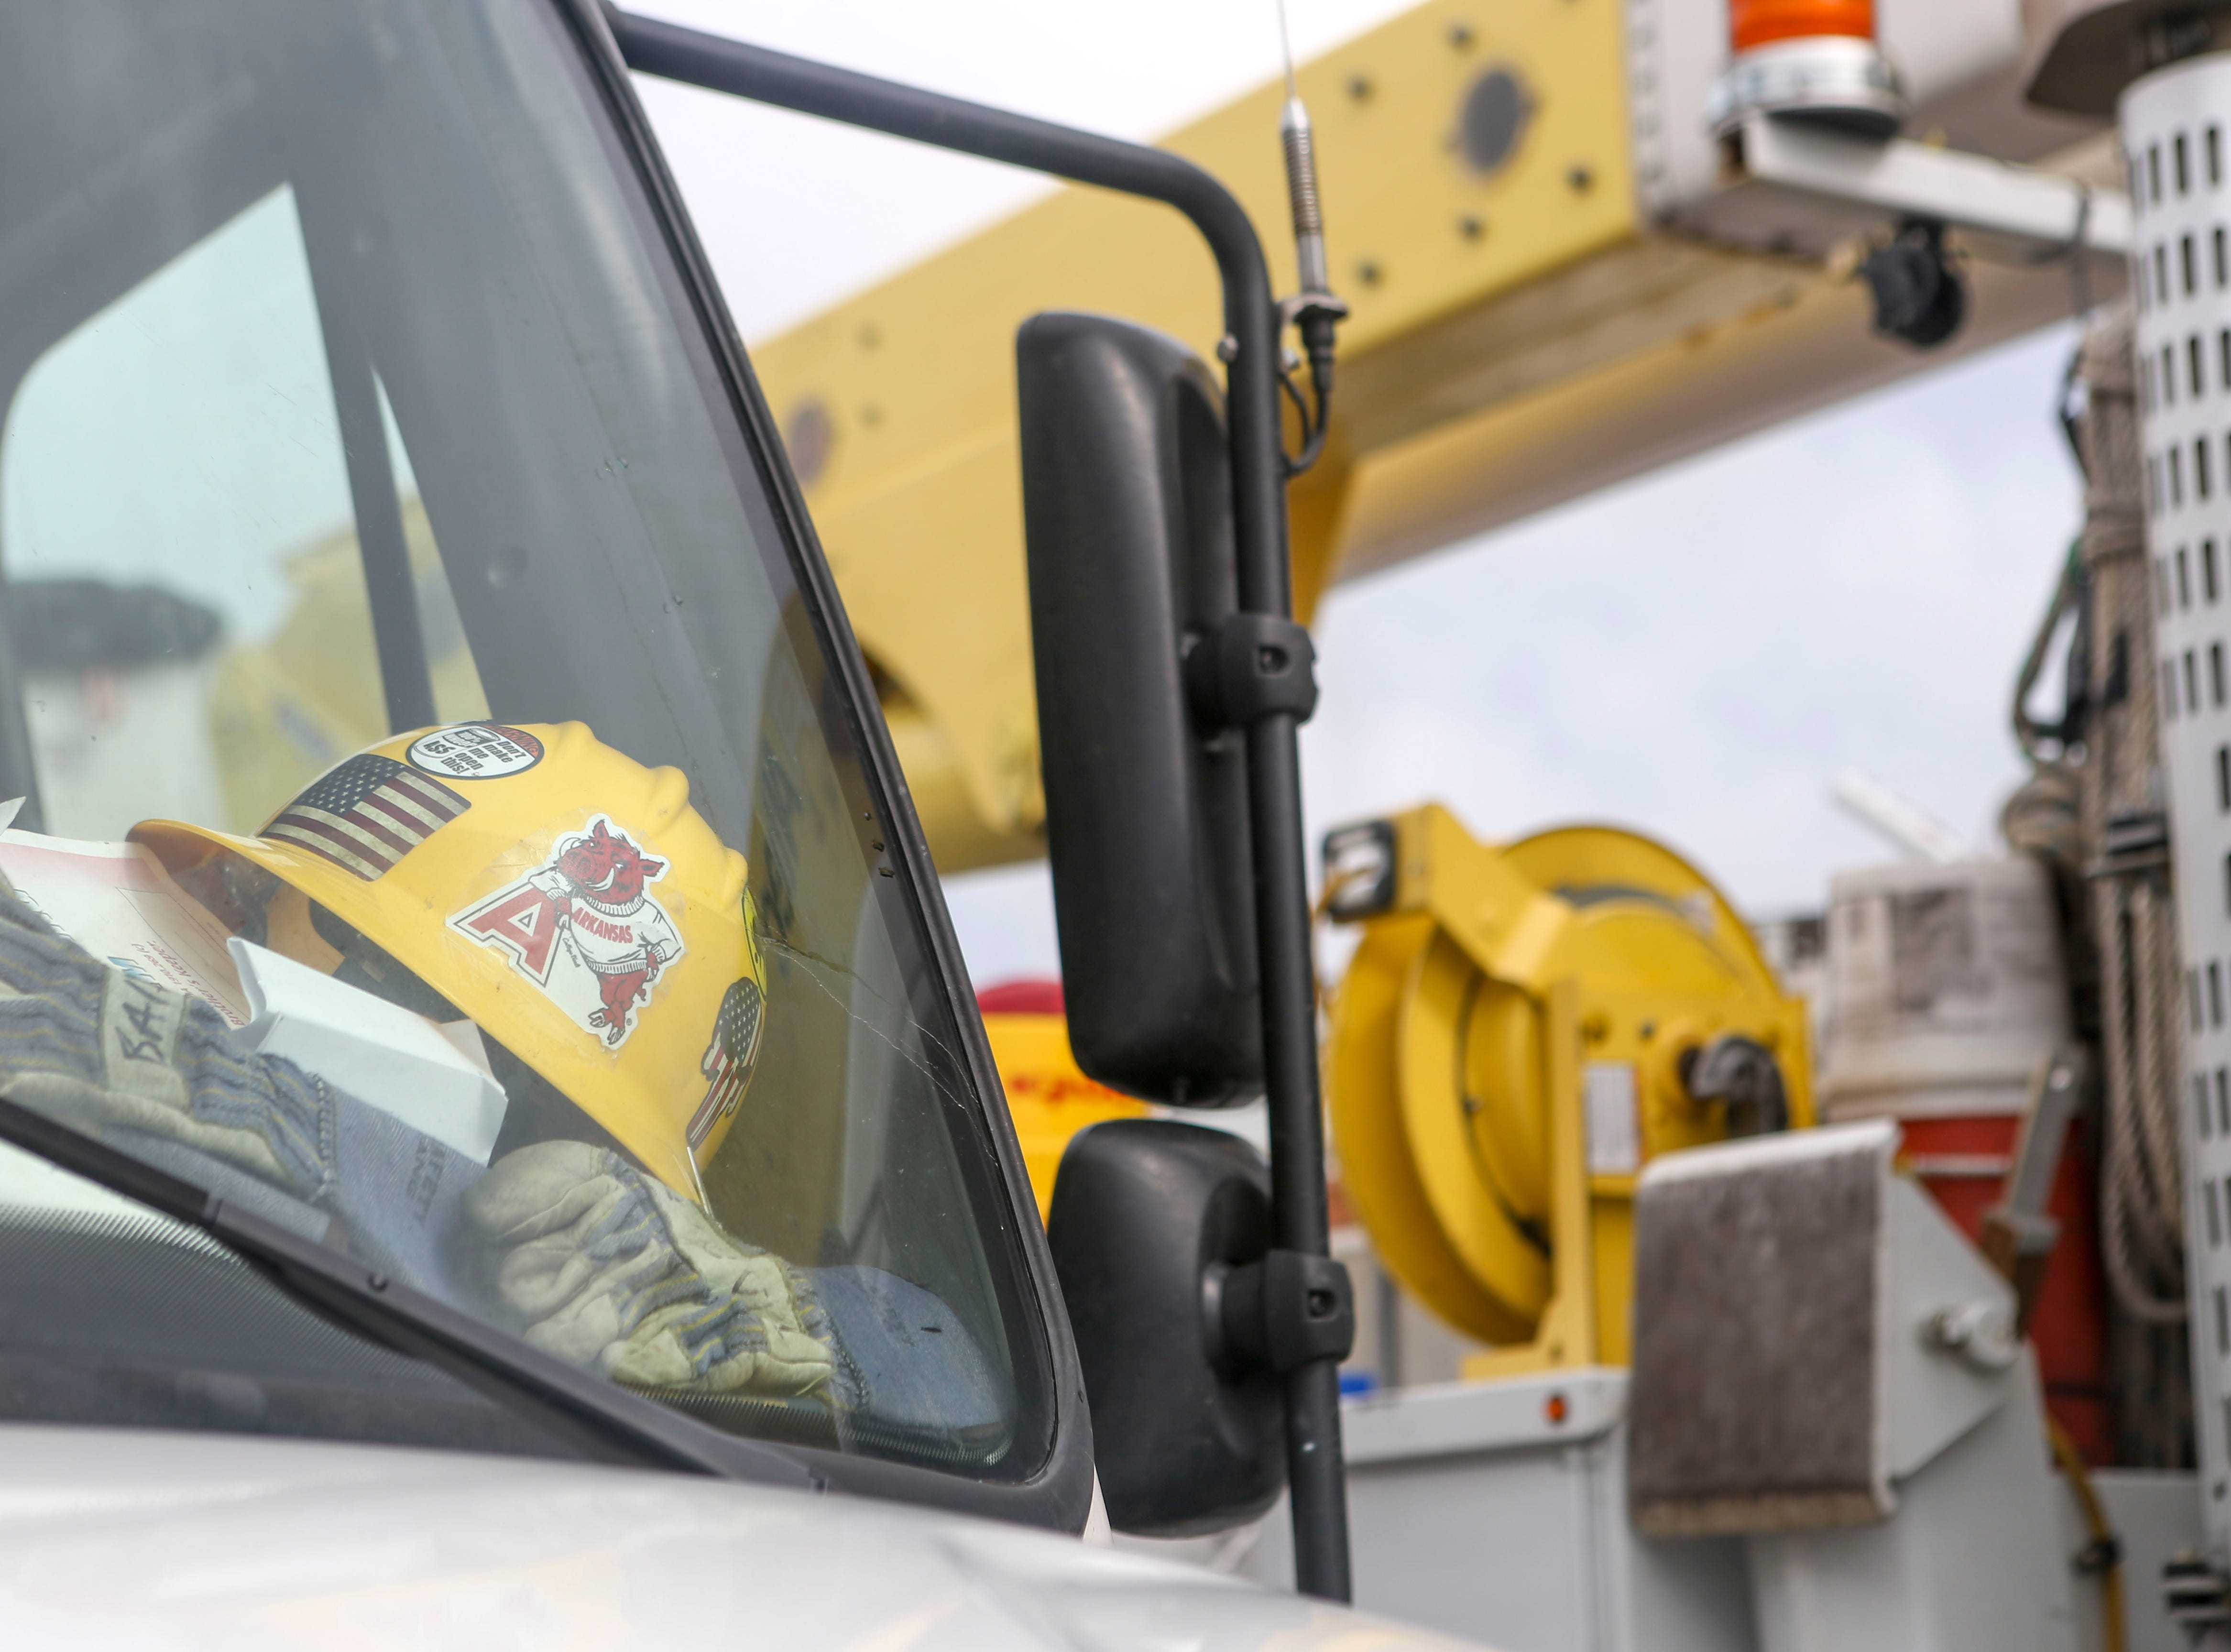 A helmet and equipment belonging to linemen assisting with Hurricane Florence recovery efforts rest on the dashboard of a work truck having just pulled up at Southwest Tennessee Electric in Jackson, Tenn., Monday, Sept. 24, 2018.